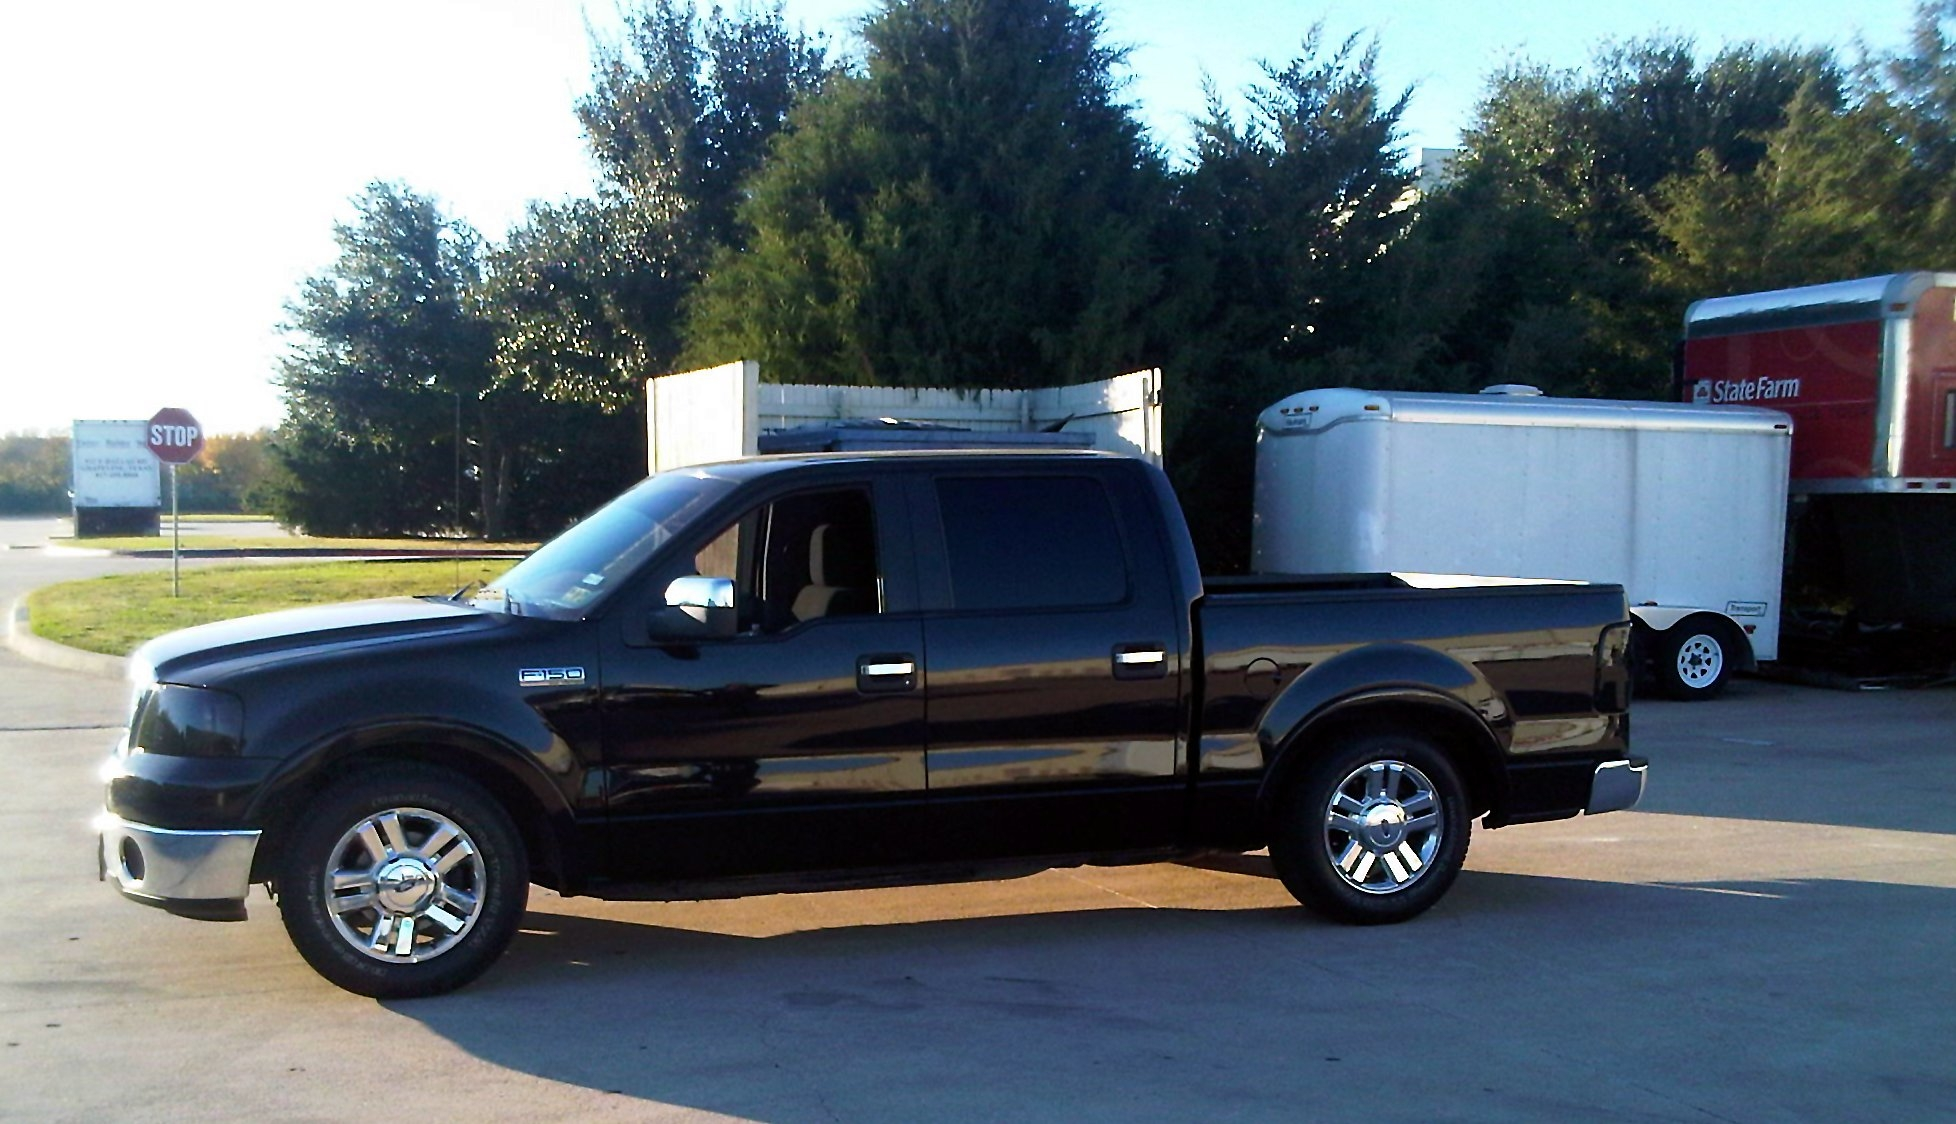 fguzman03 39 s 2008 ford f150 supercrew cab in fort worth tx. Black Bedroom Furniture Sets. Home Design Ideas